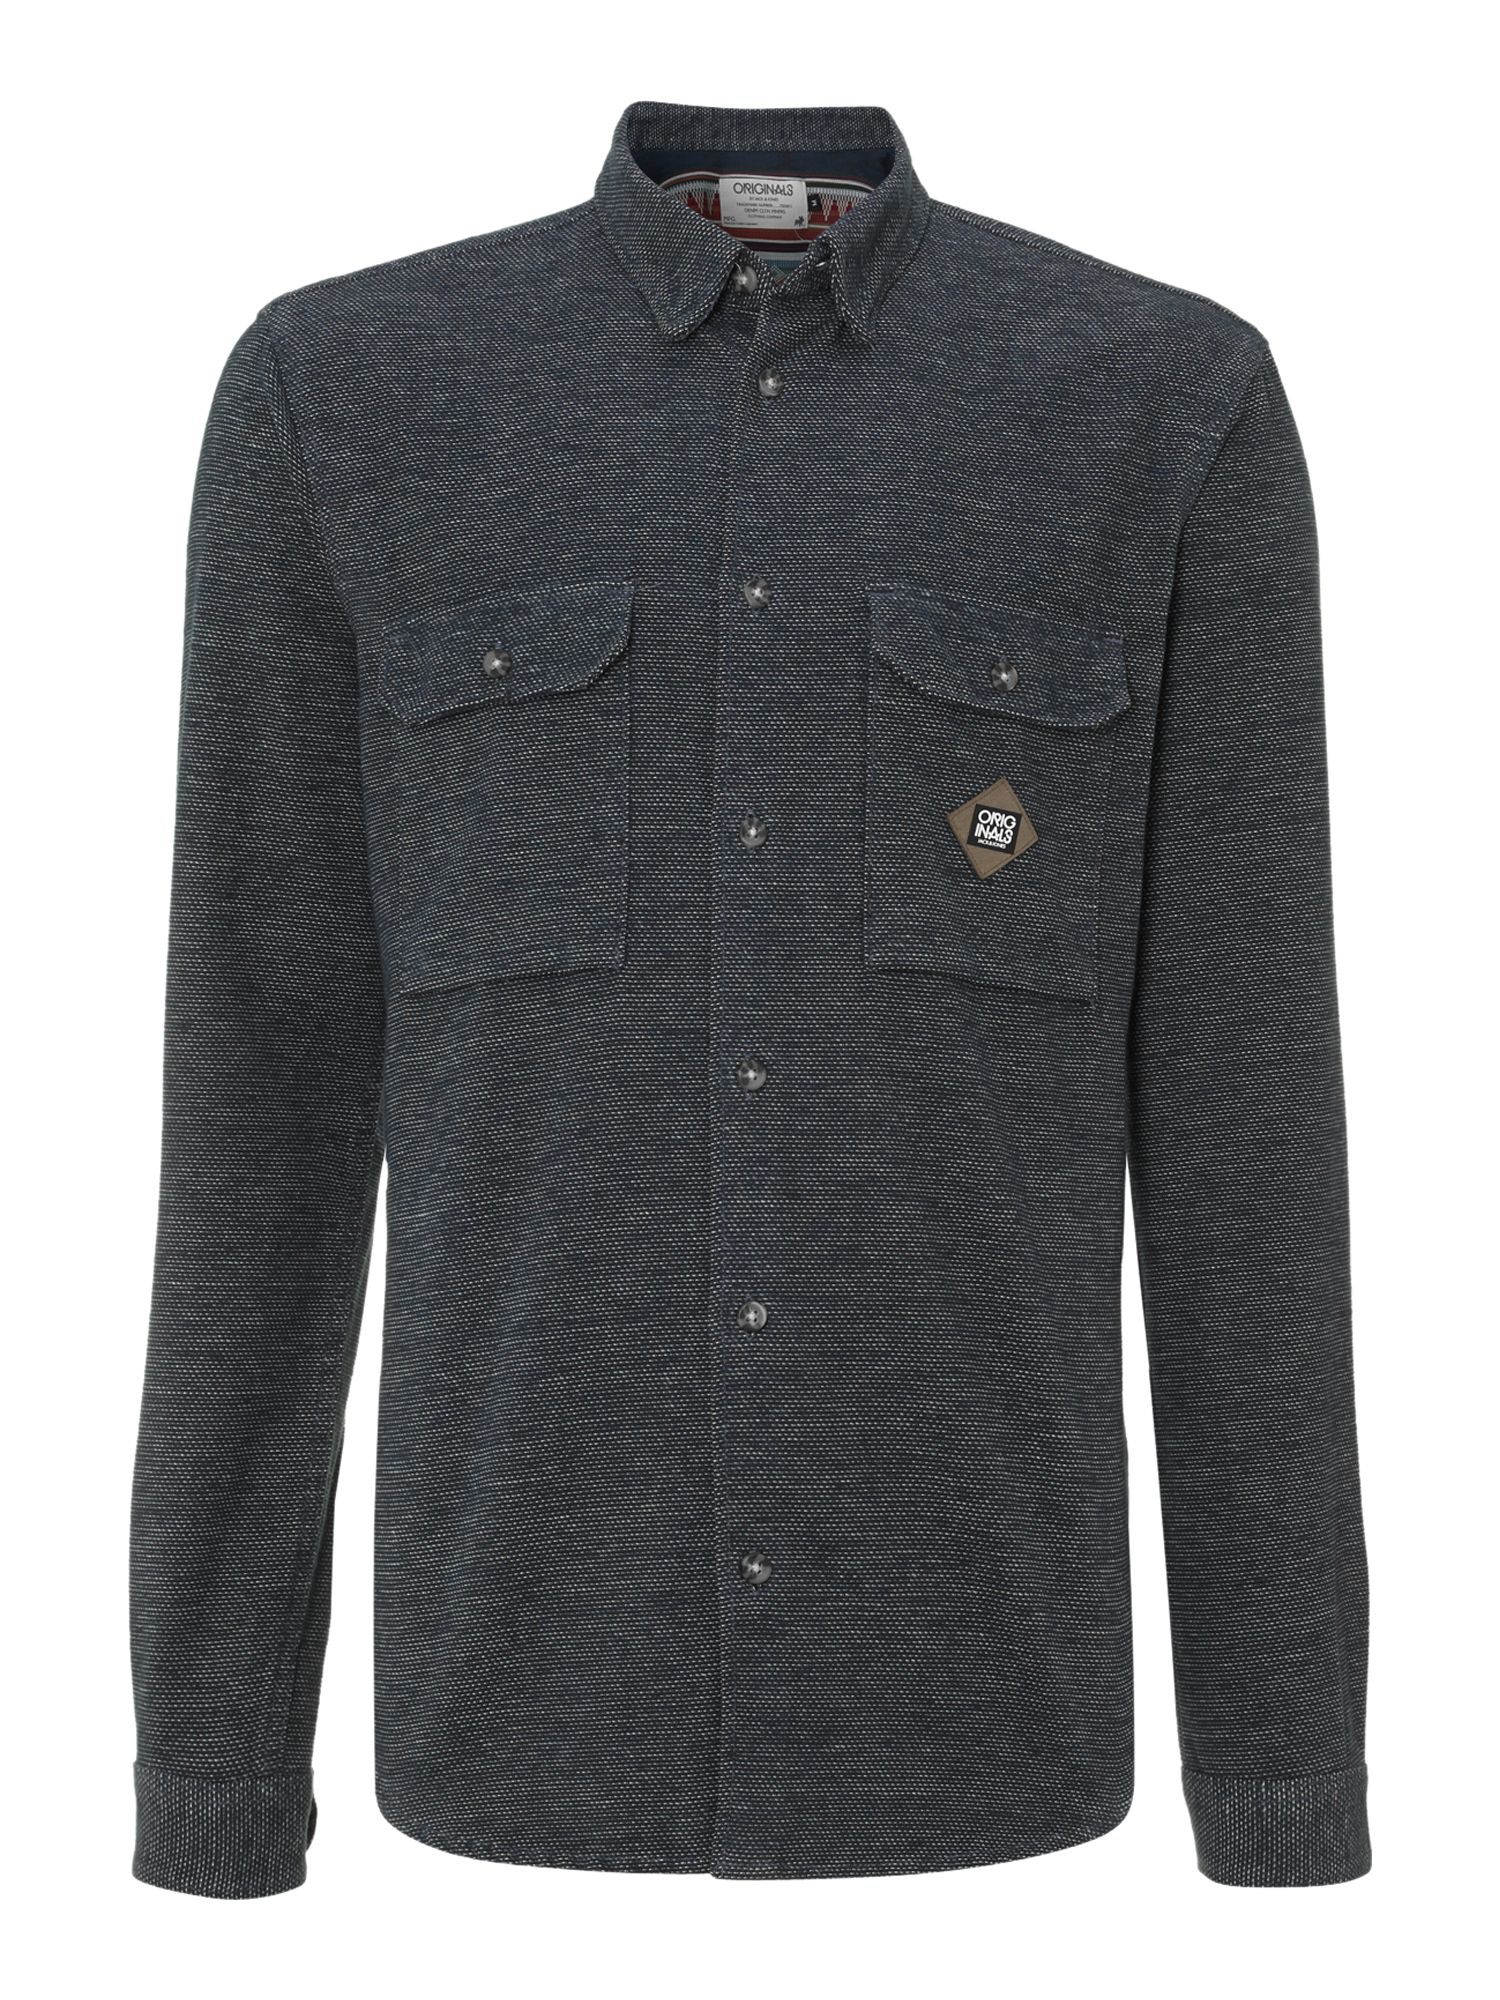 Heavy weight textured shirt